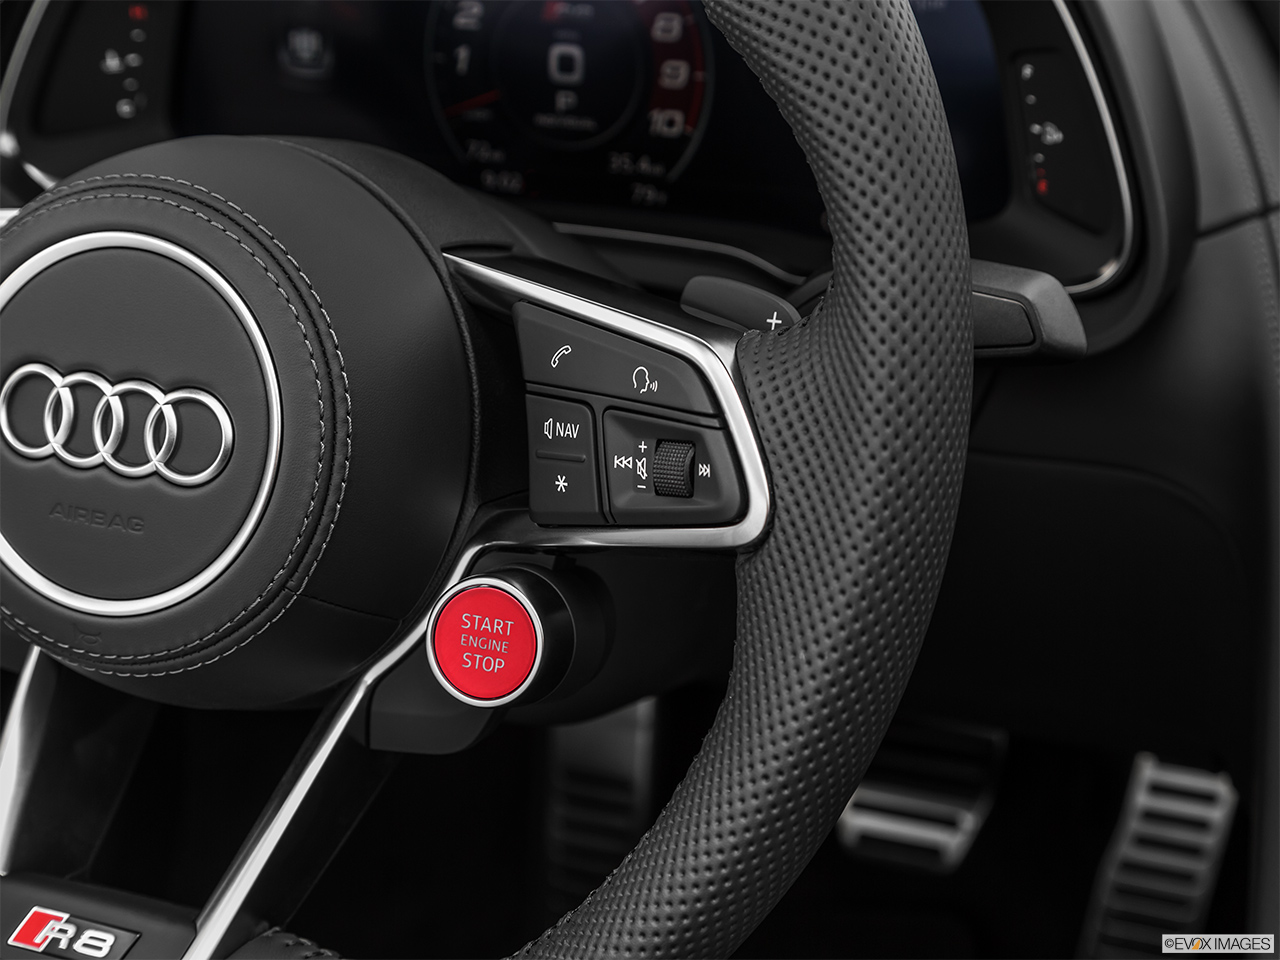 2020 Audi R8 Spyder V10 Steering Wheel Controls (Right Side)